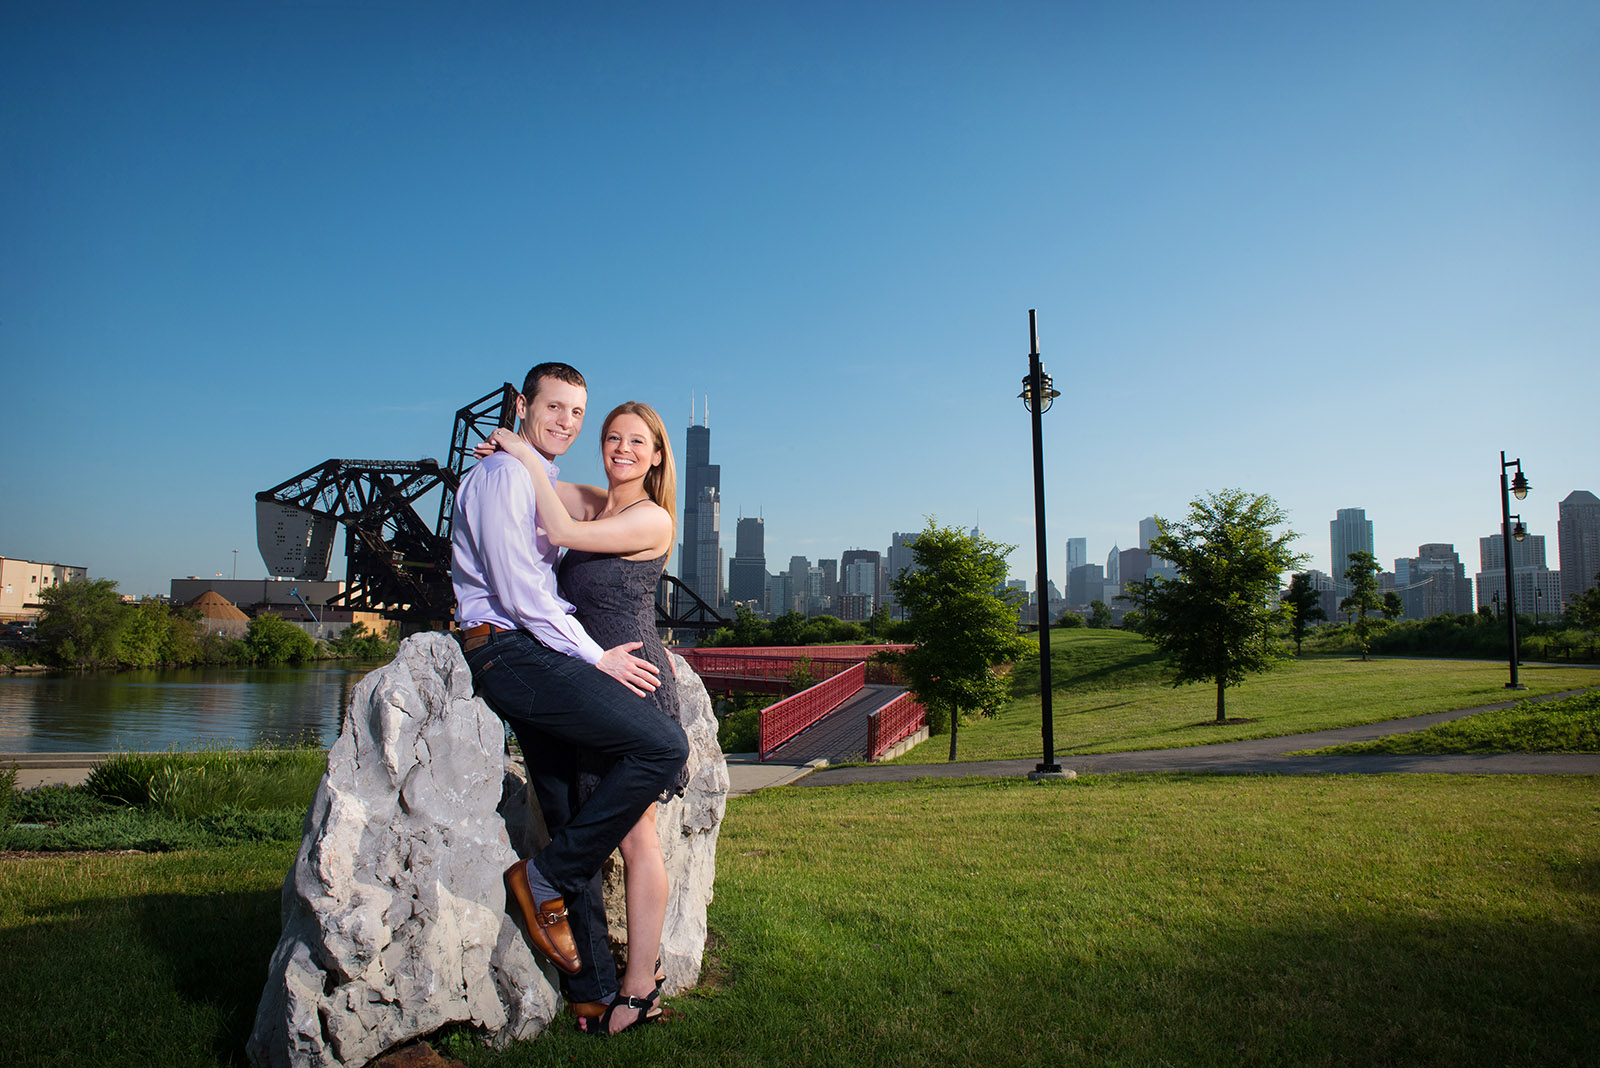 Spring Engagement Session in Chicago's Ping Tom Park